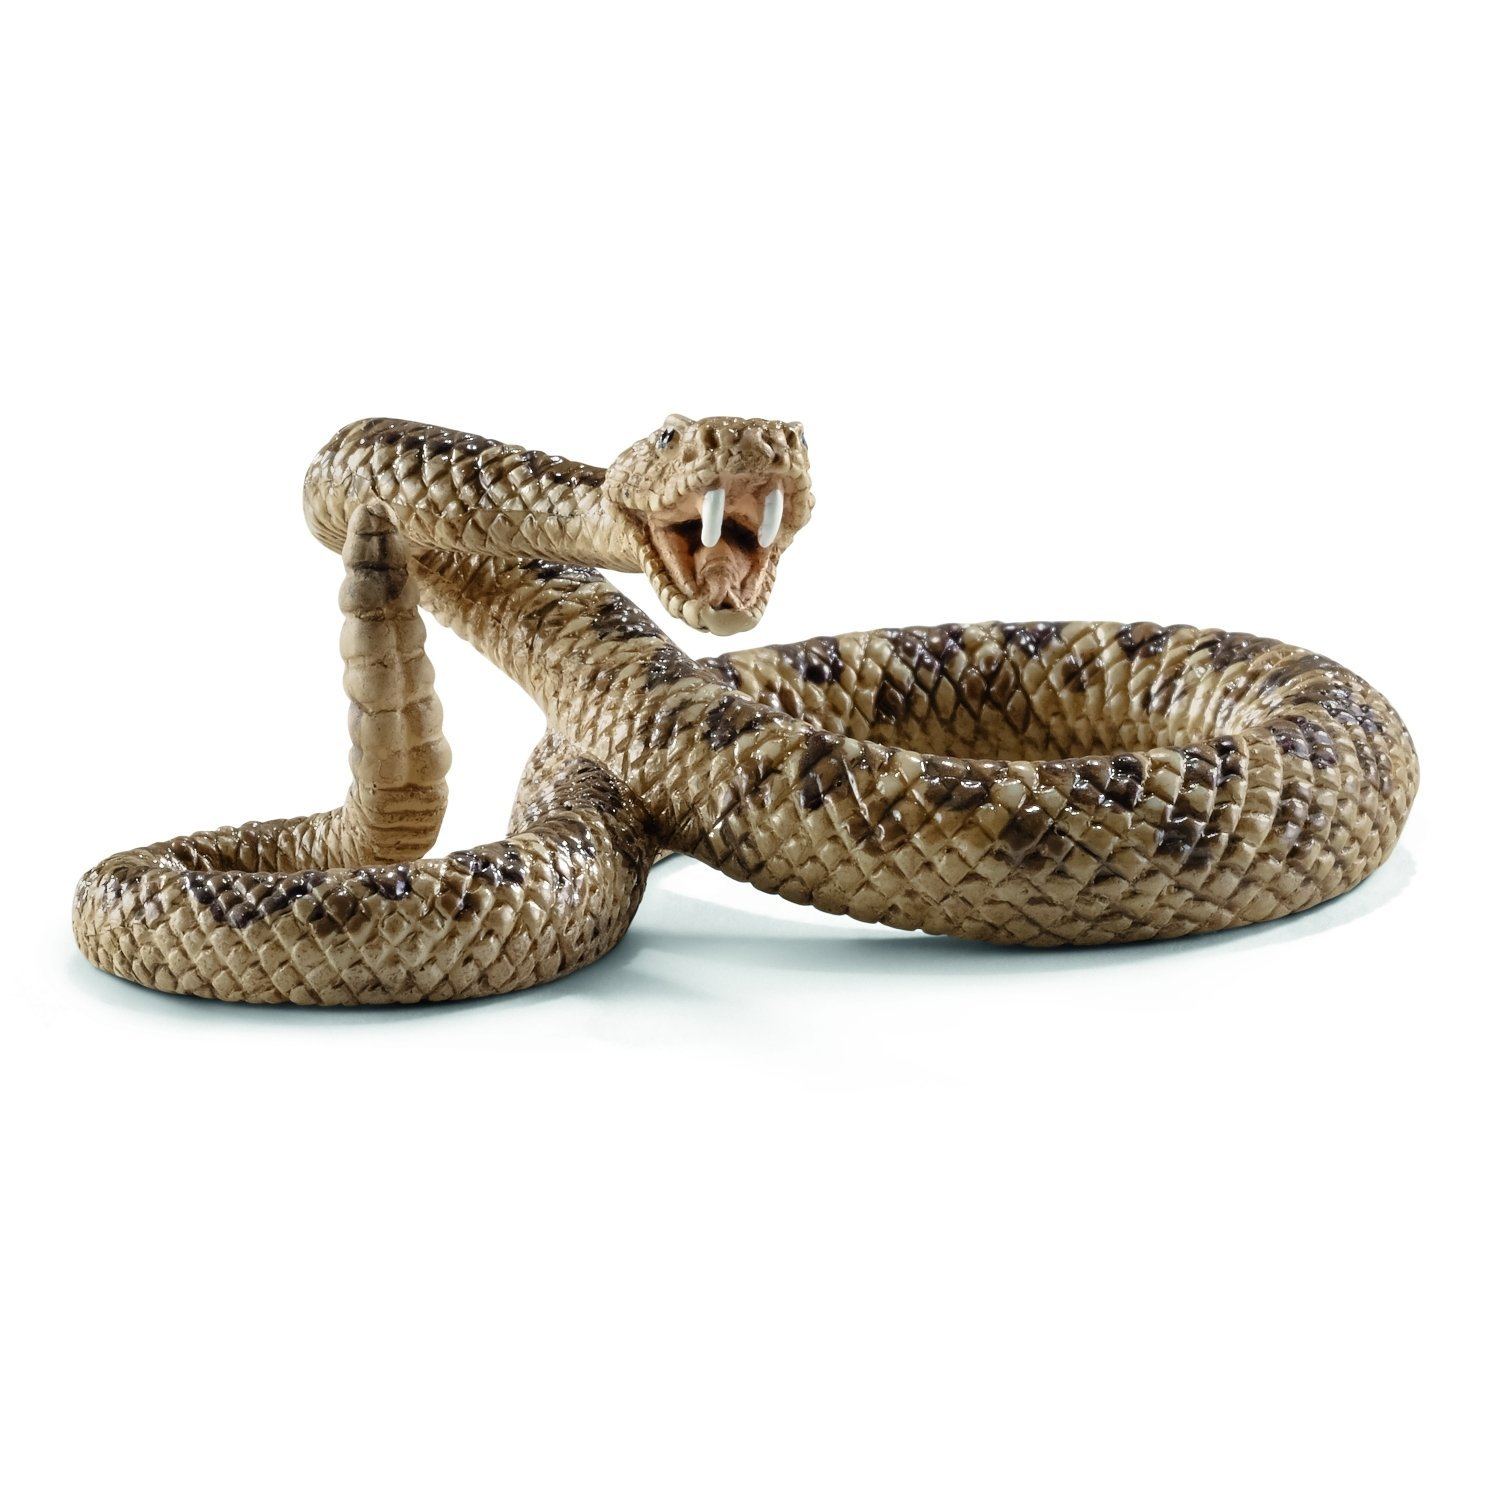 Rattlesnake High Quality Background on Wallpapers Vista